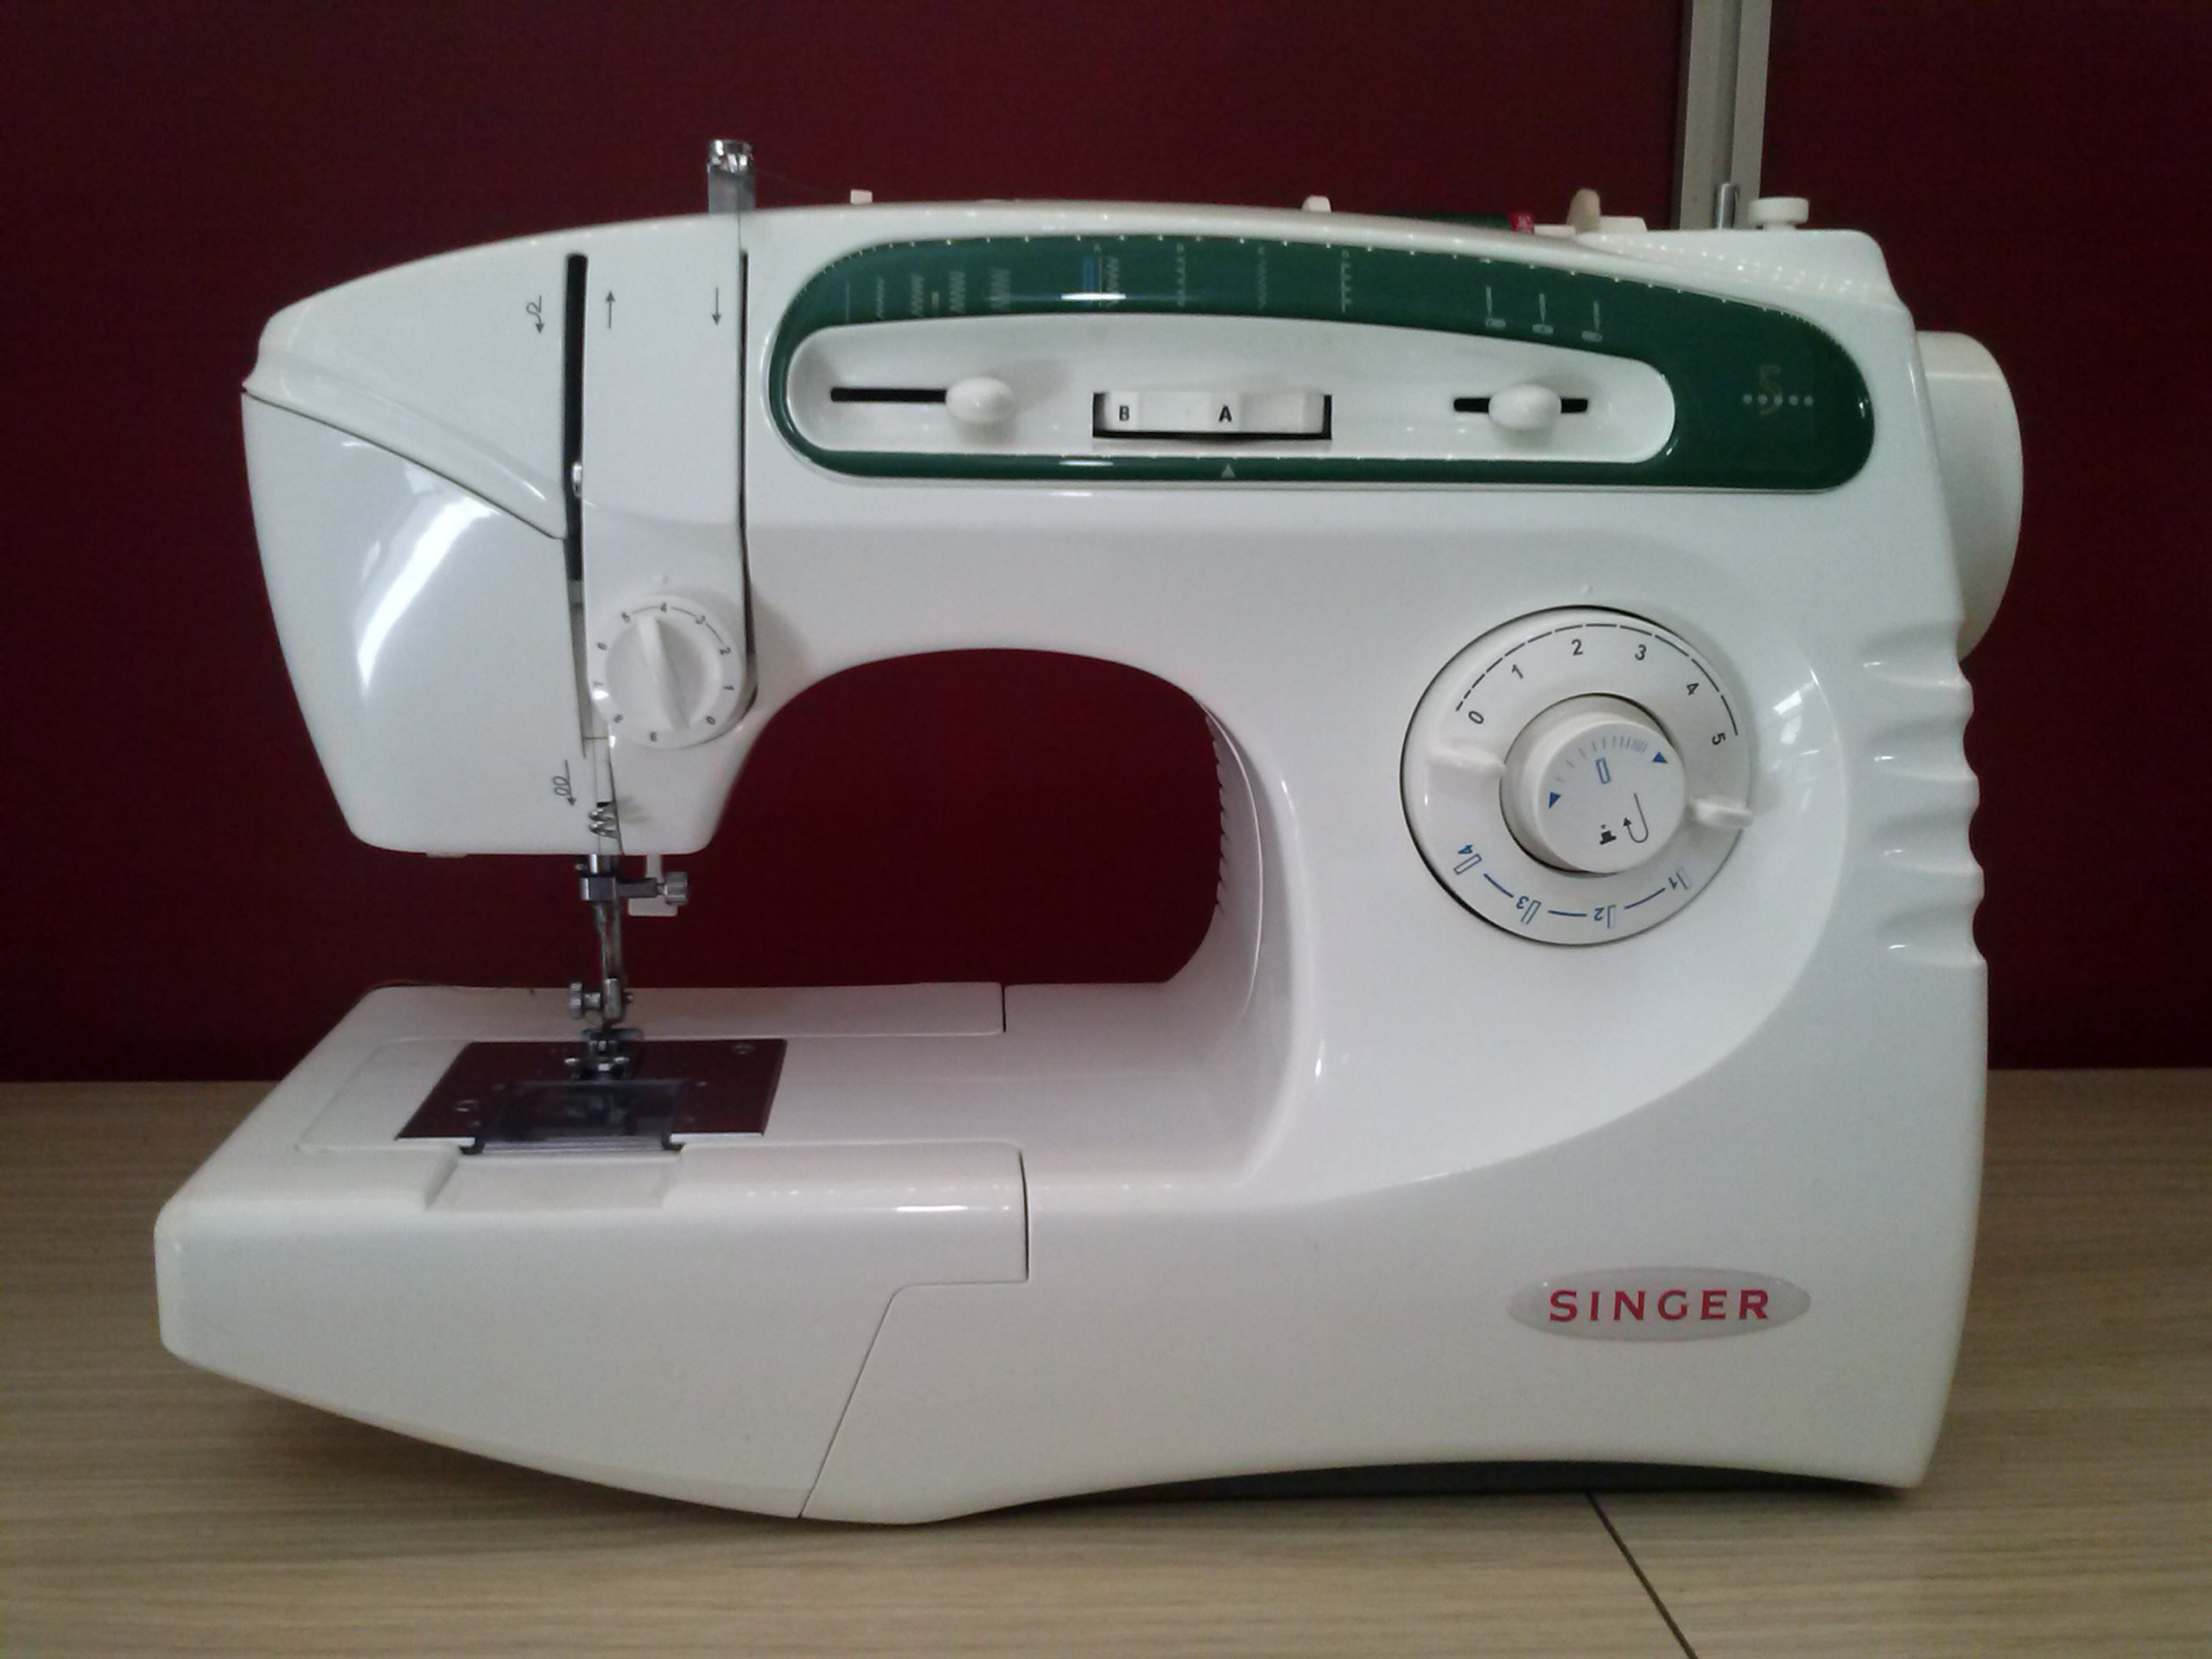 A ricambi singer 5 5417 c for Ricambi singer